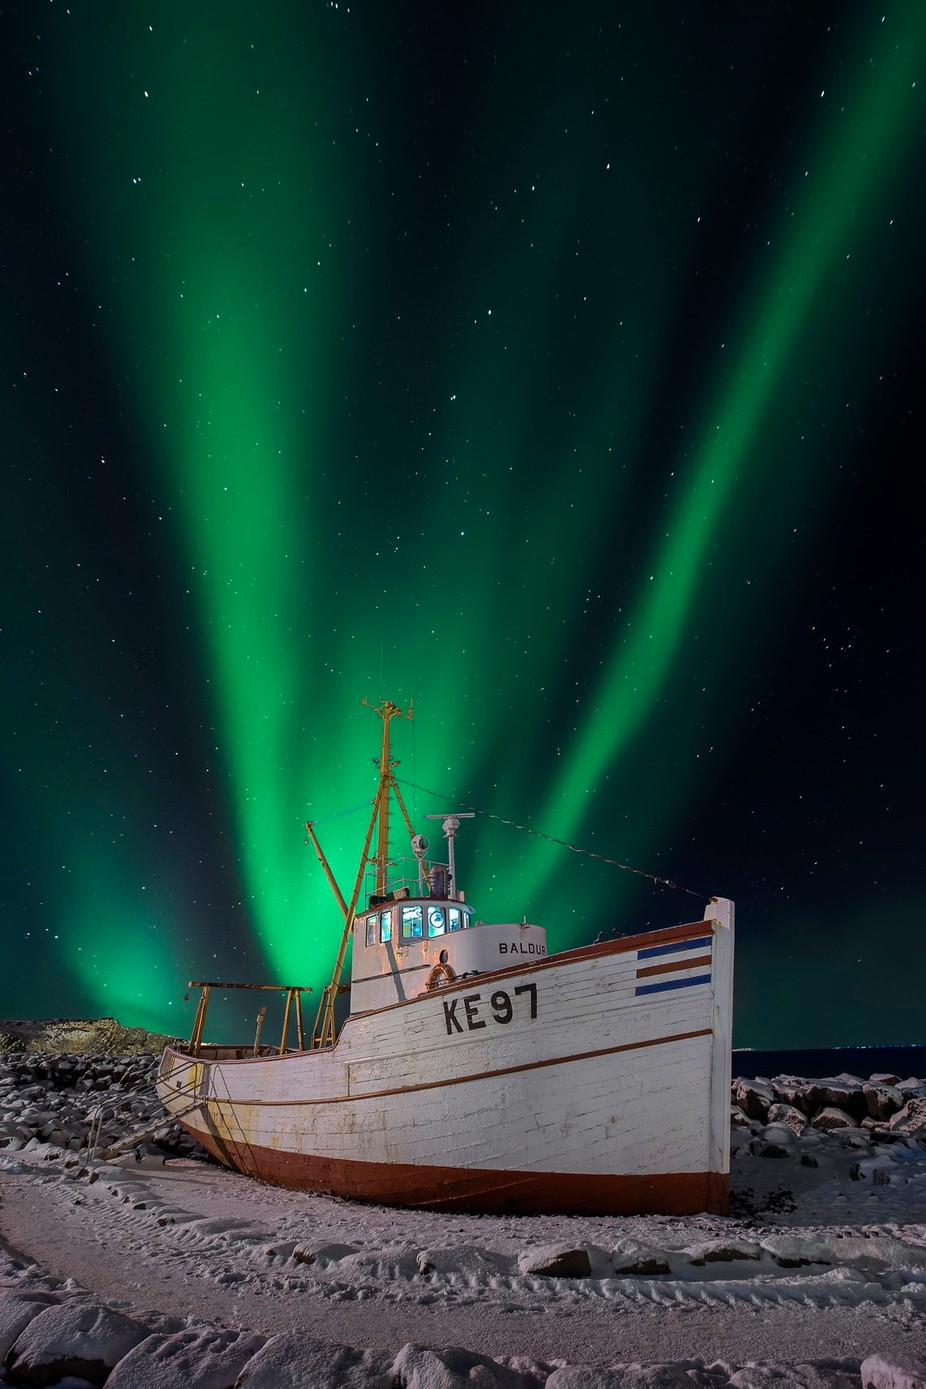 Iceland_Keflavik_057 by gilesrrocholl - Ships And Boats Photo Contest